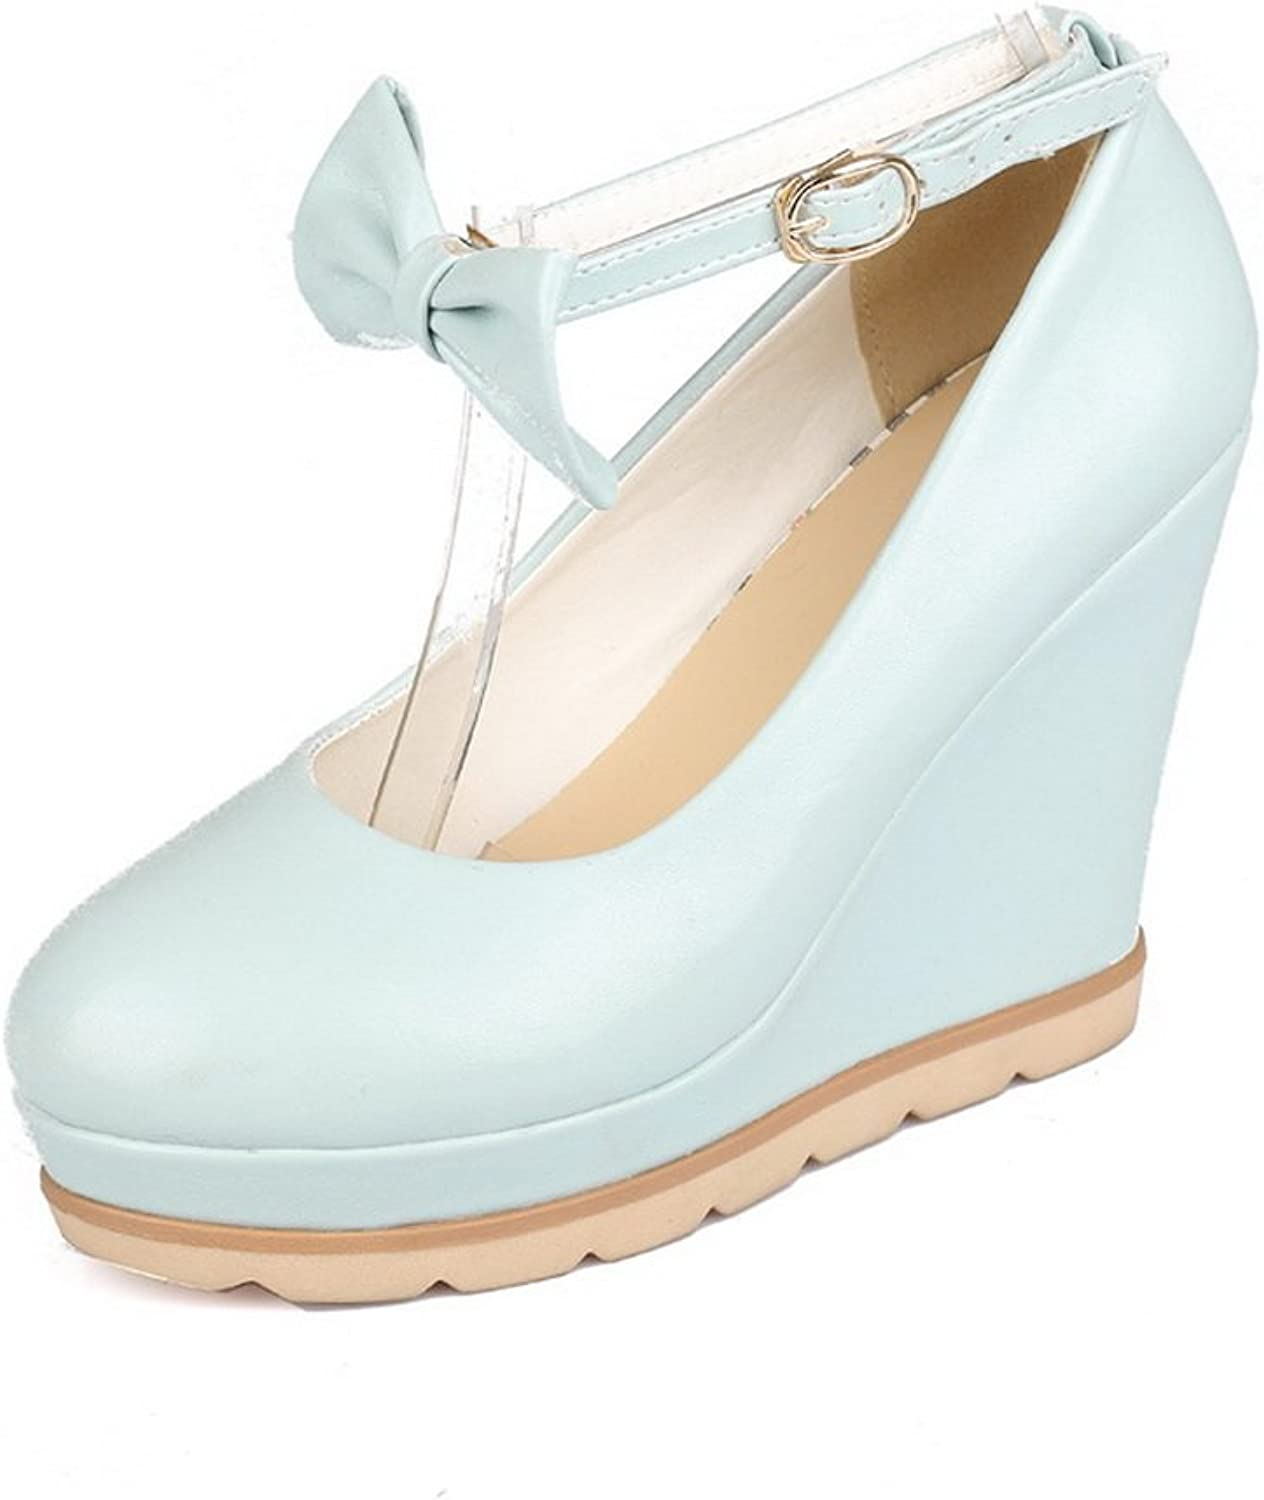 1TO9 Womens Buckle Platform Wedges Low-Cut Uppers Leather Pumps shoes MMS04377